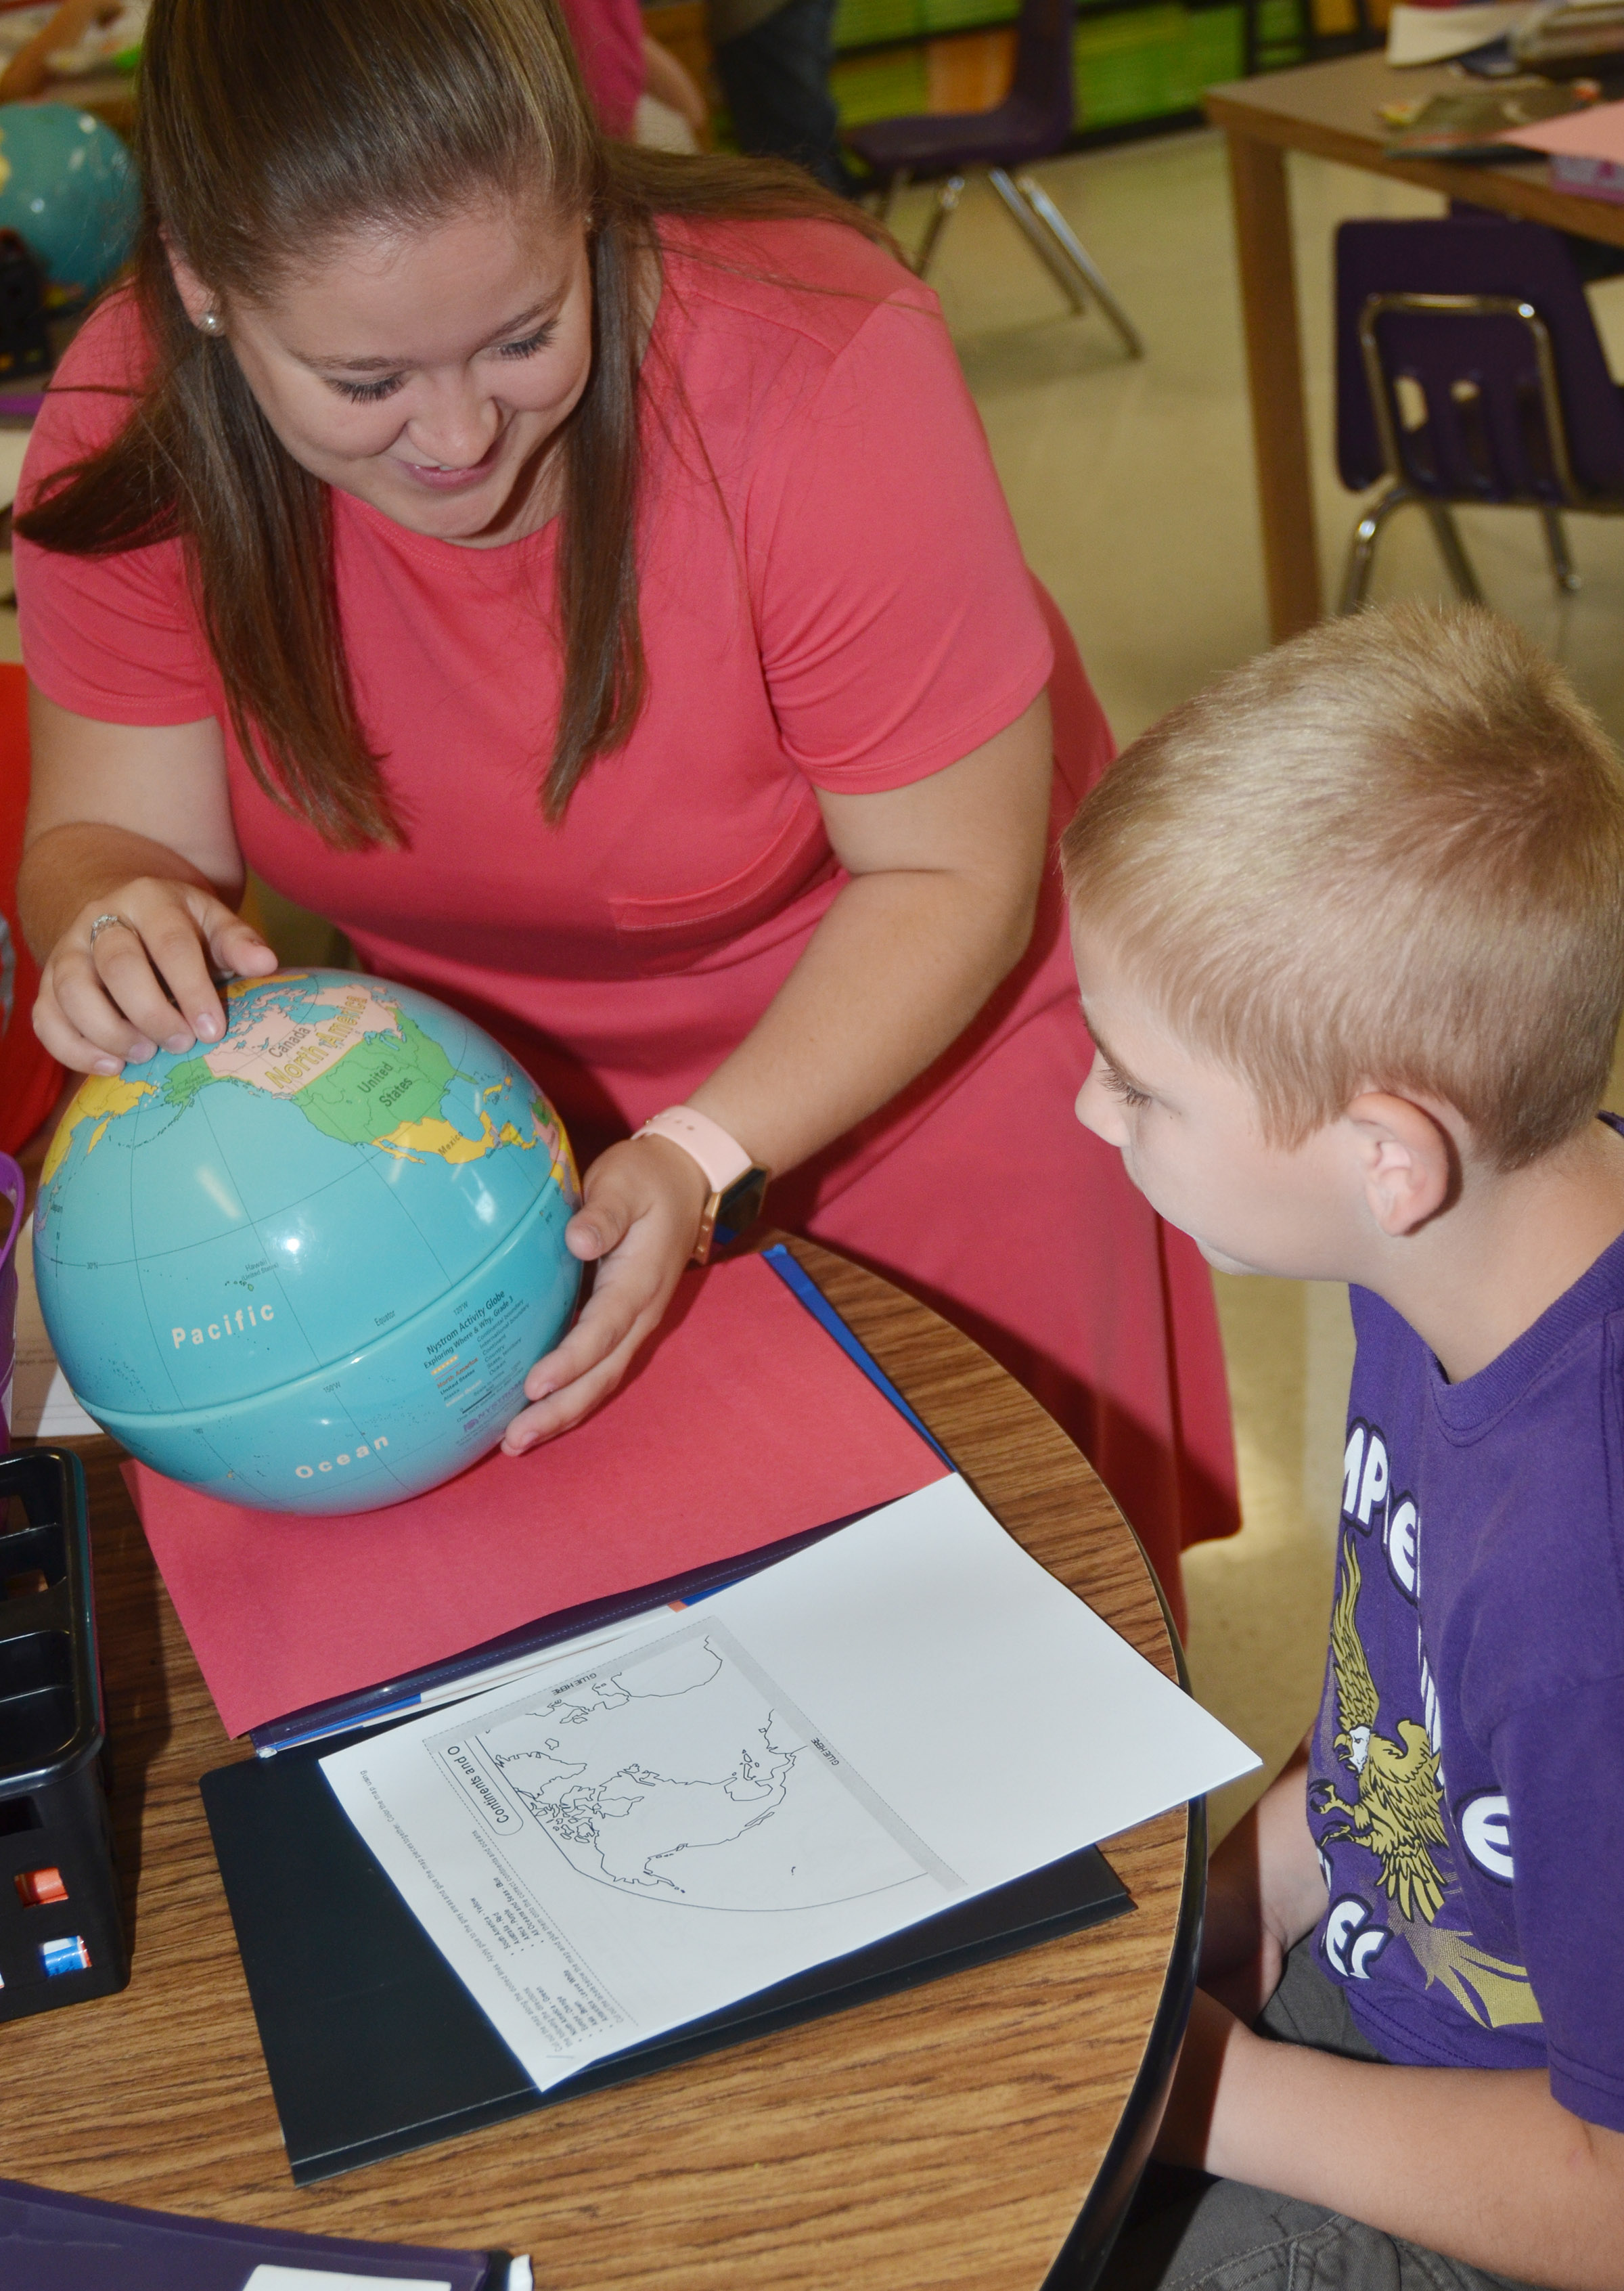 Campbellsville University education student Jordan Bray helps CES third-grader Joseph Greer identify the continents on a globe.